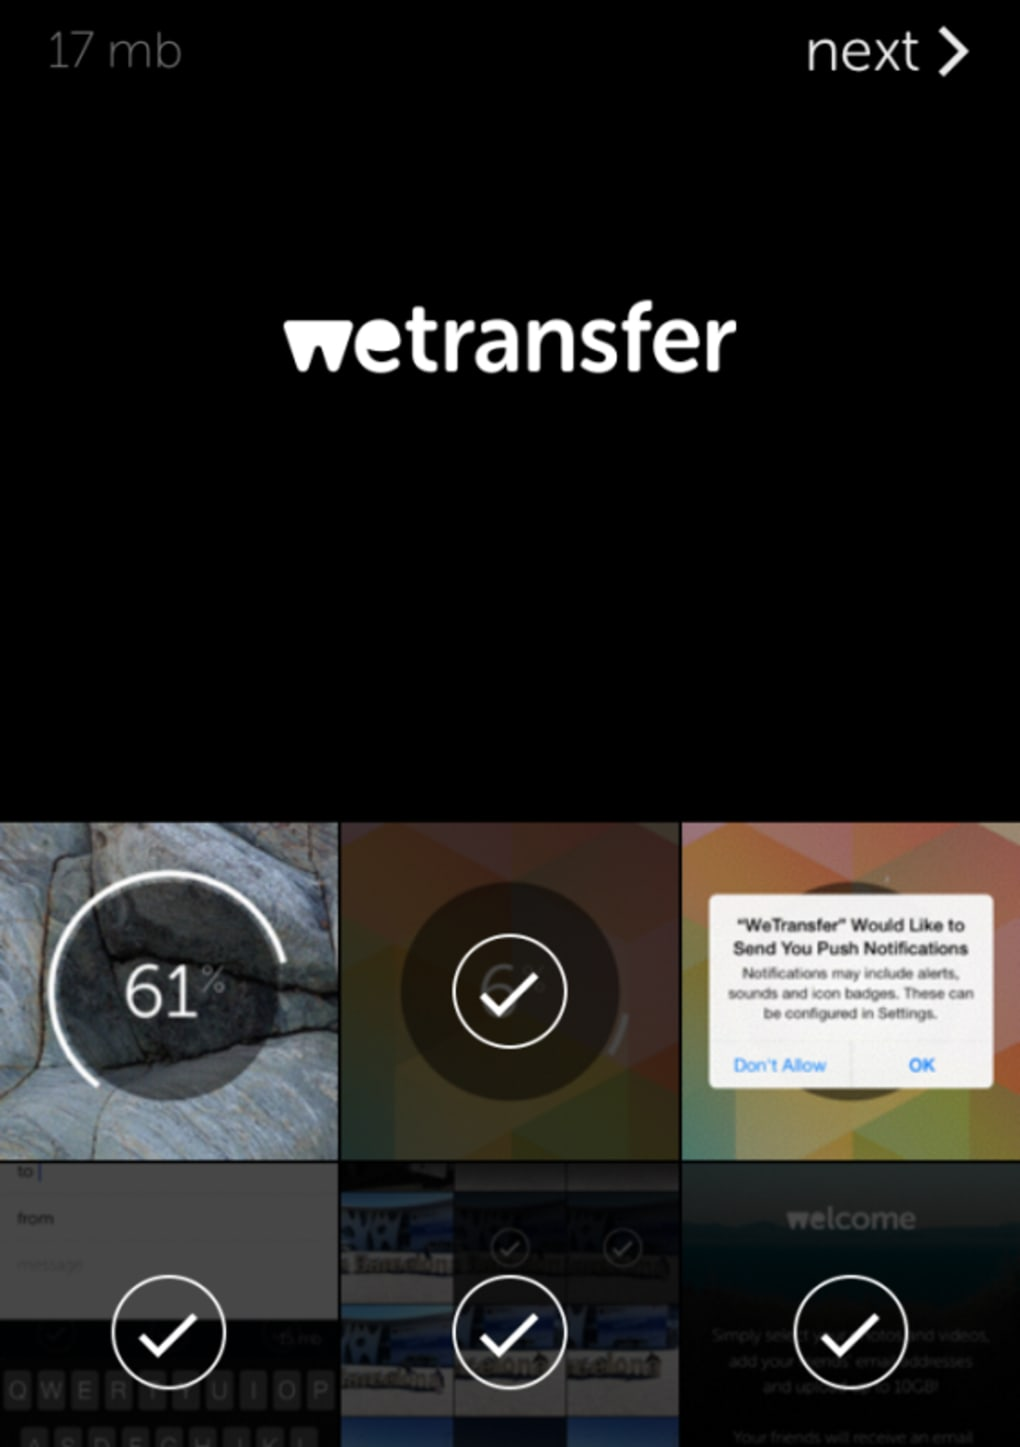 resume Wetransfer Resume Download wetransfer for iphone download view full description wetransfer